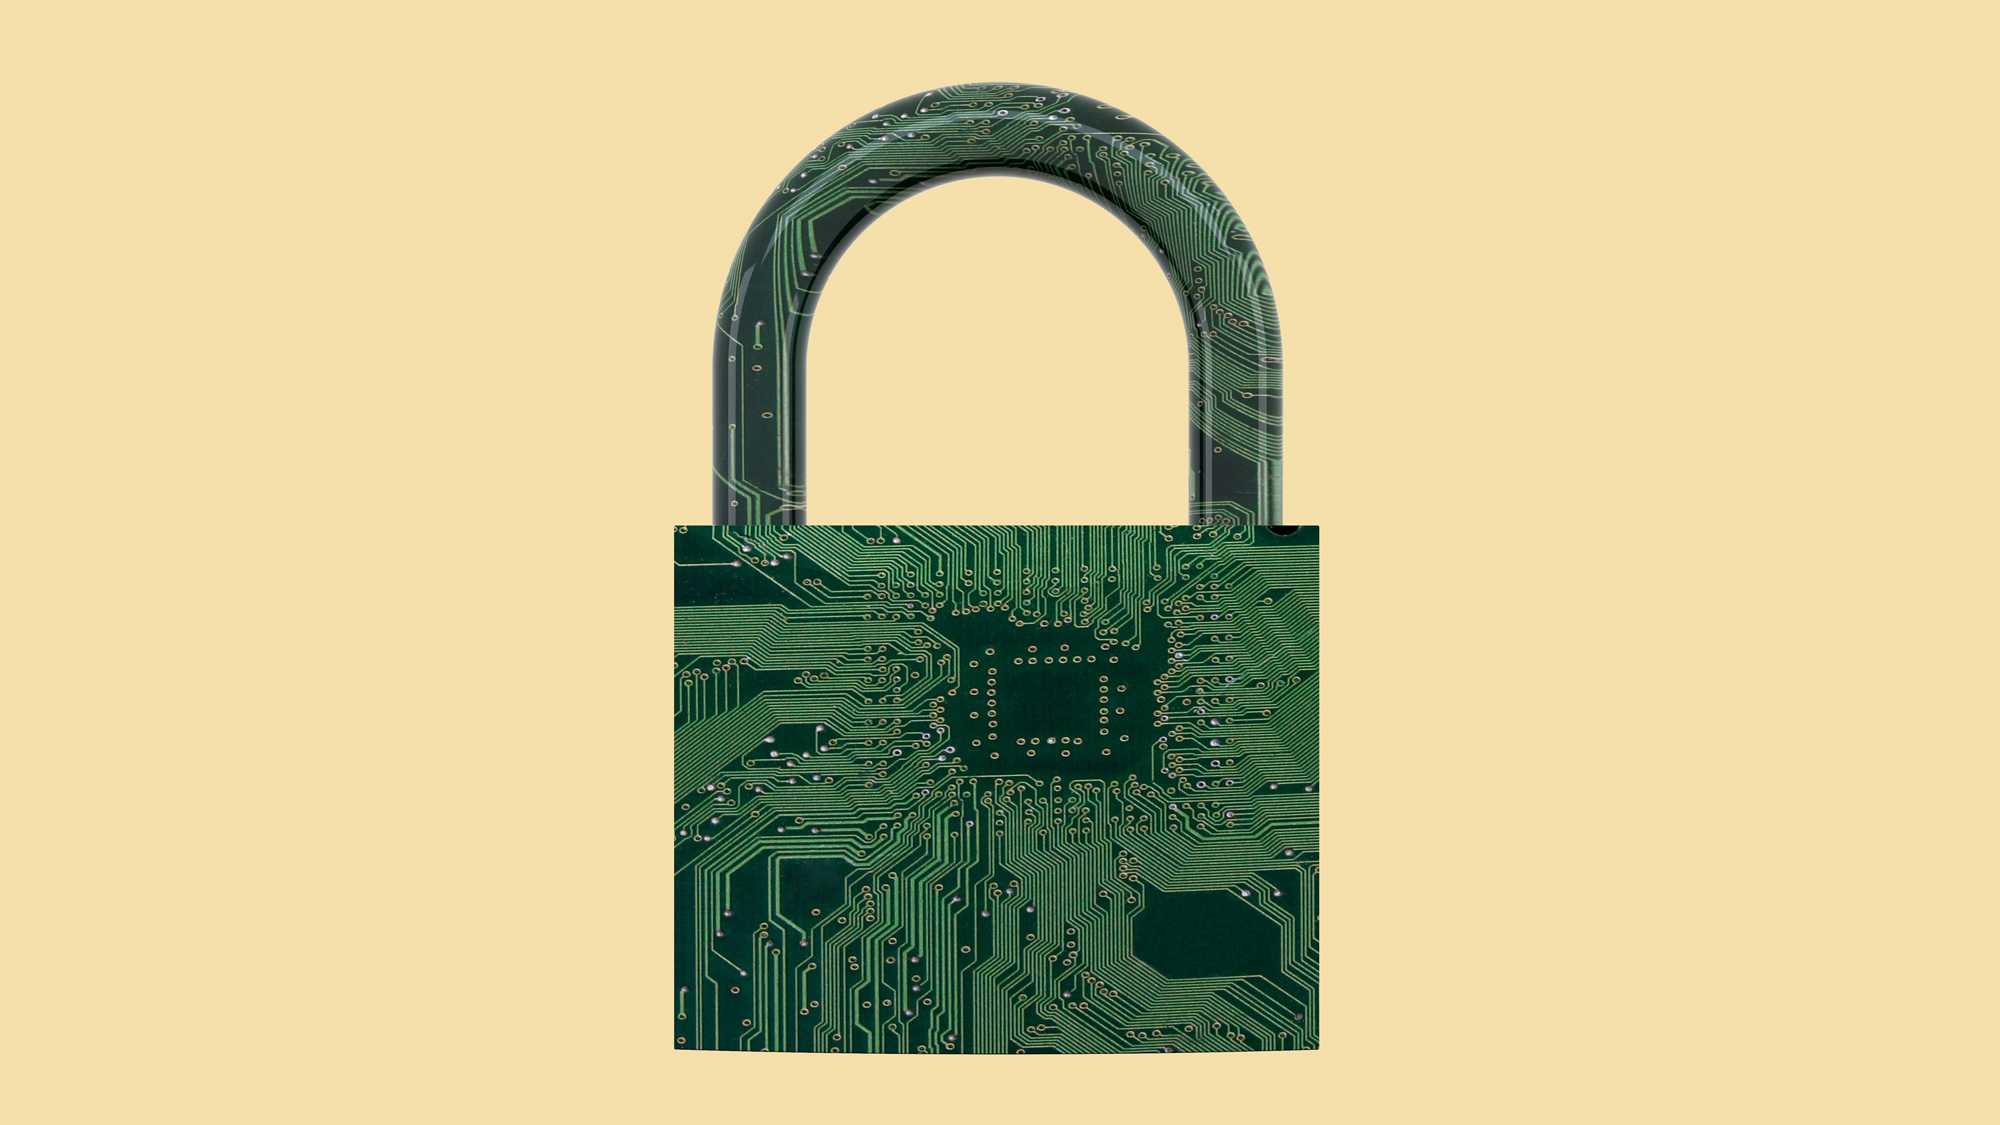 Could Ransomware Attacks Ultimately Benefit Consumers? - Harvard Business Review